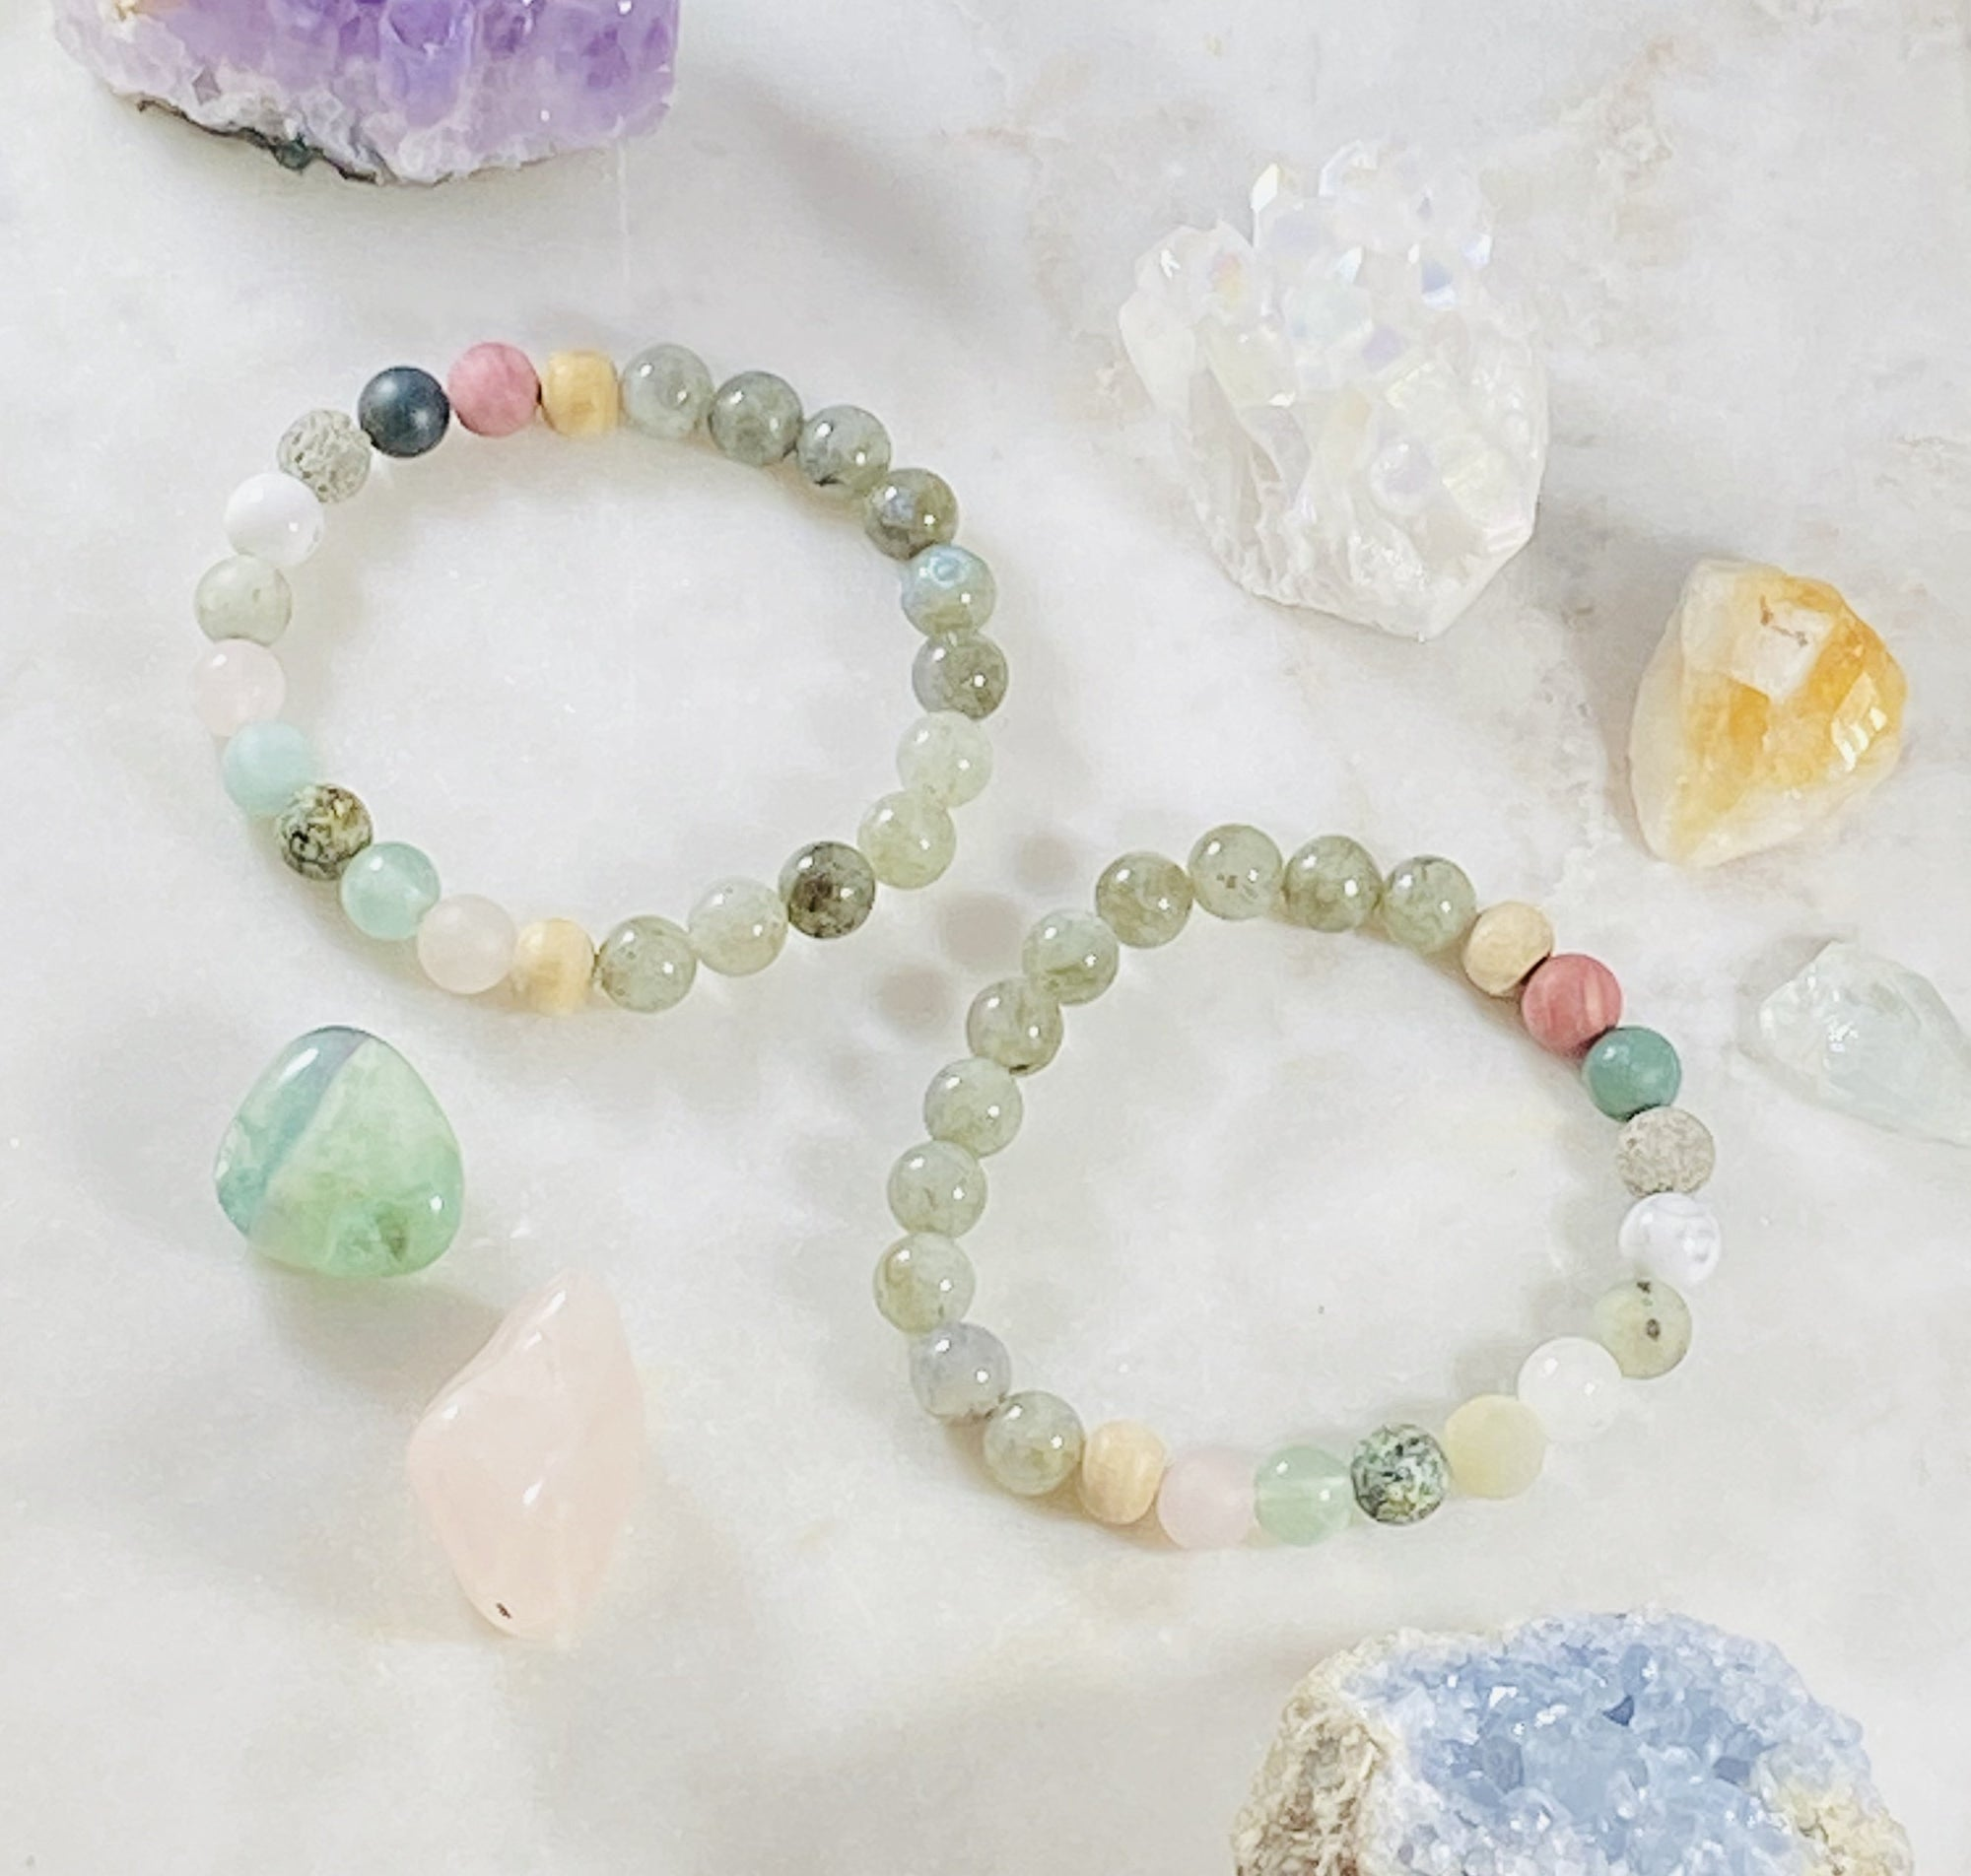 Healing crystal bracelets for raising your vibration